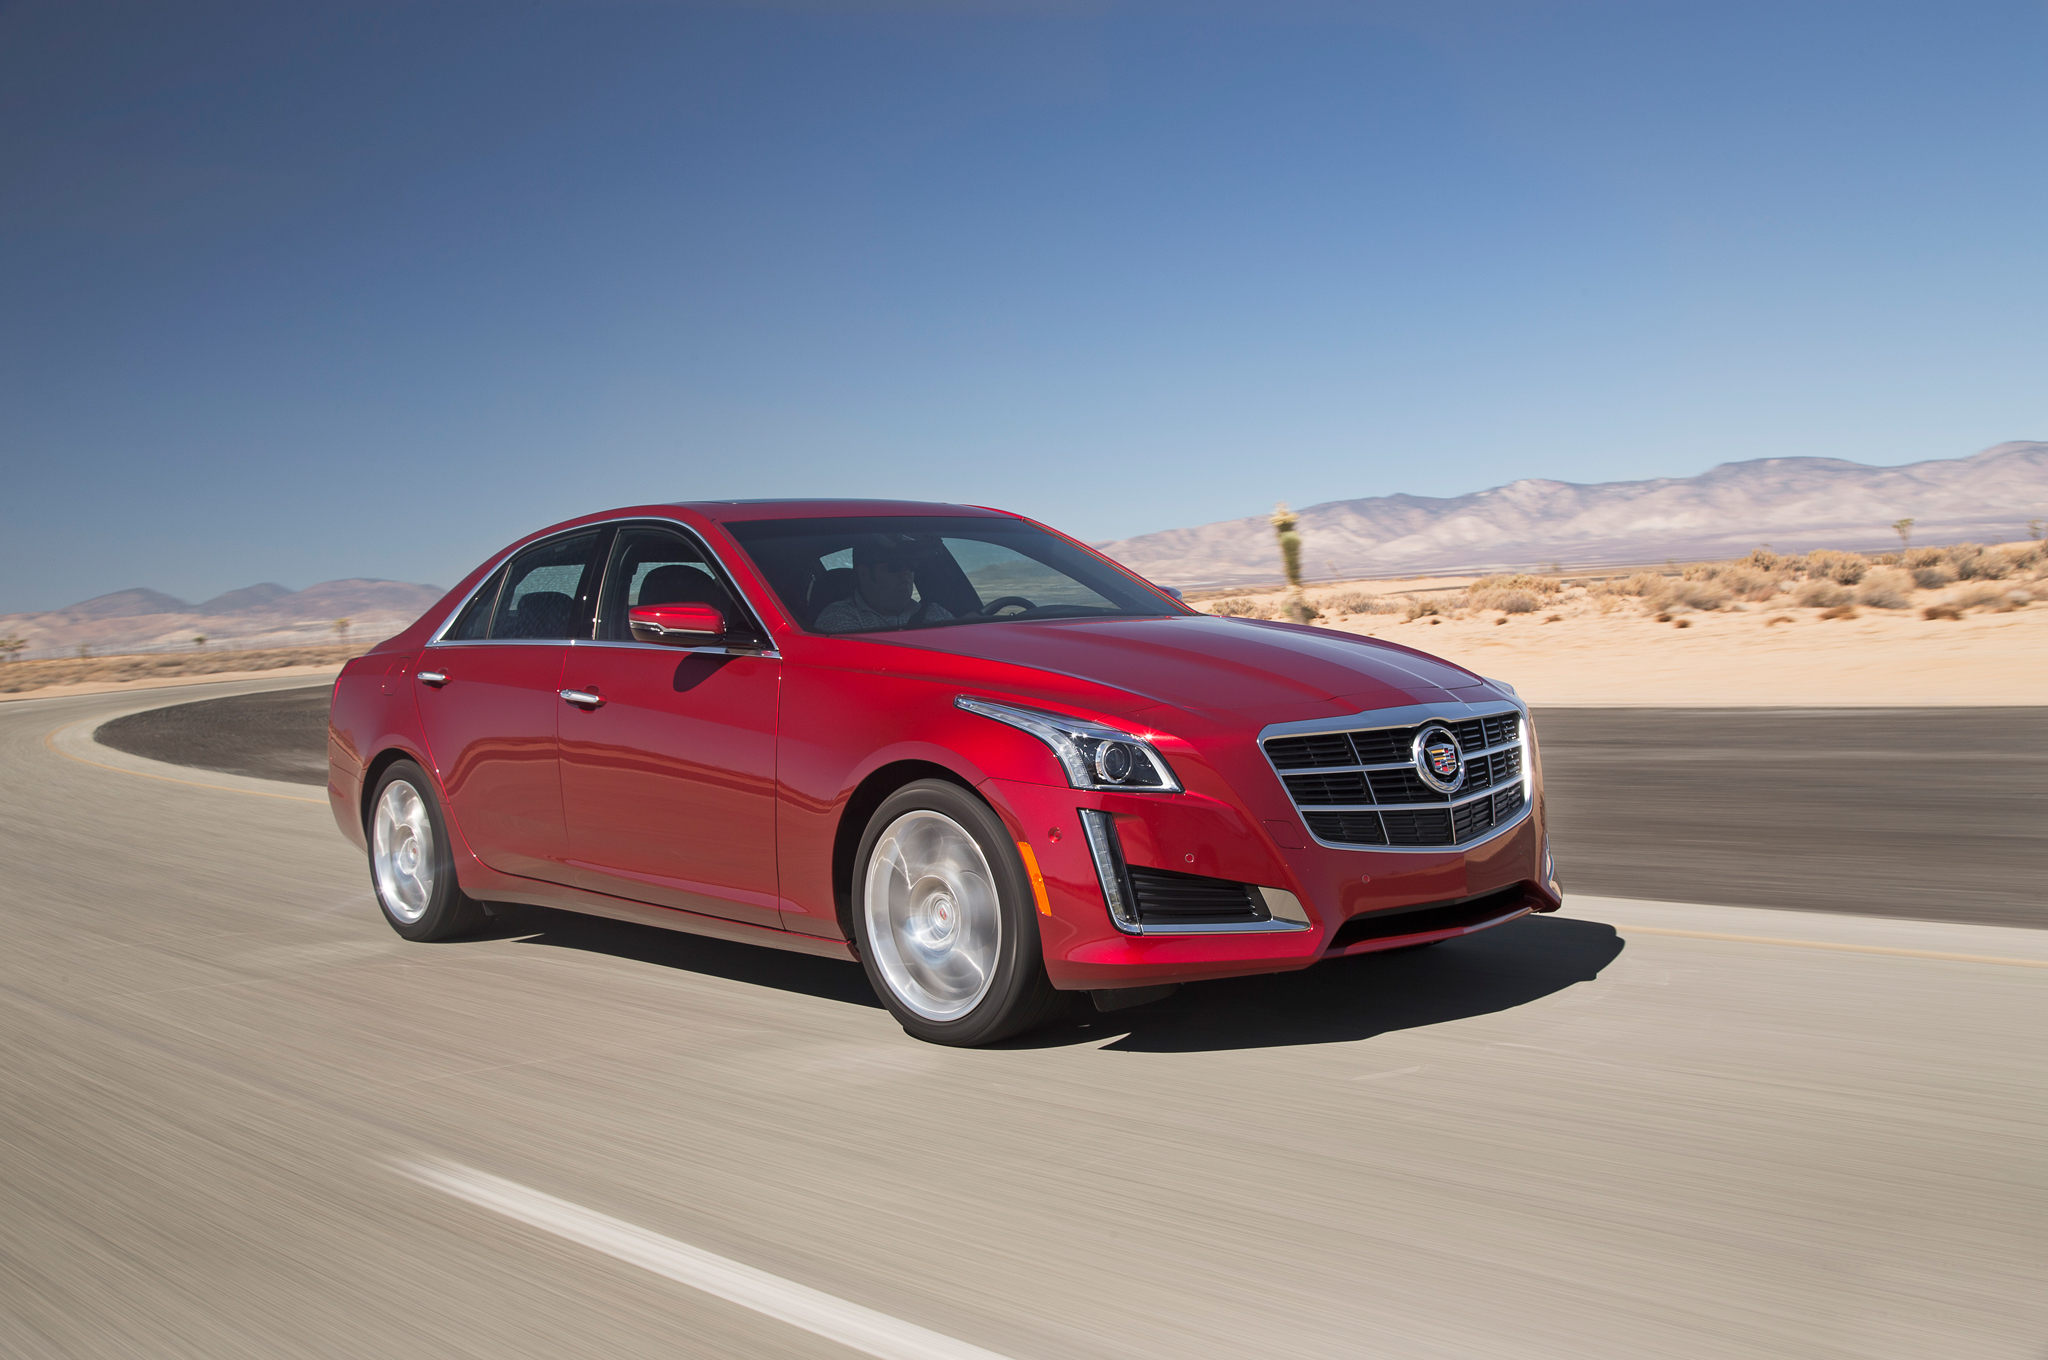 2014 Motor Trend Car of the Year Contender Cadillac CTS Motor Trend